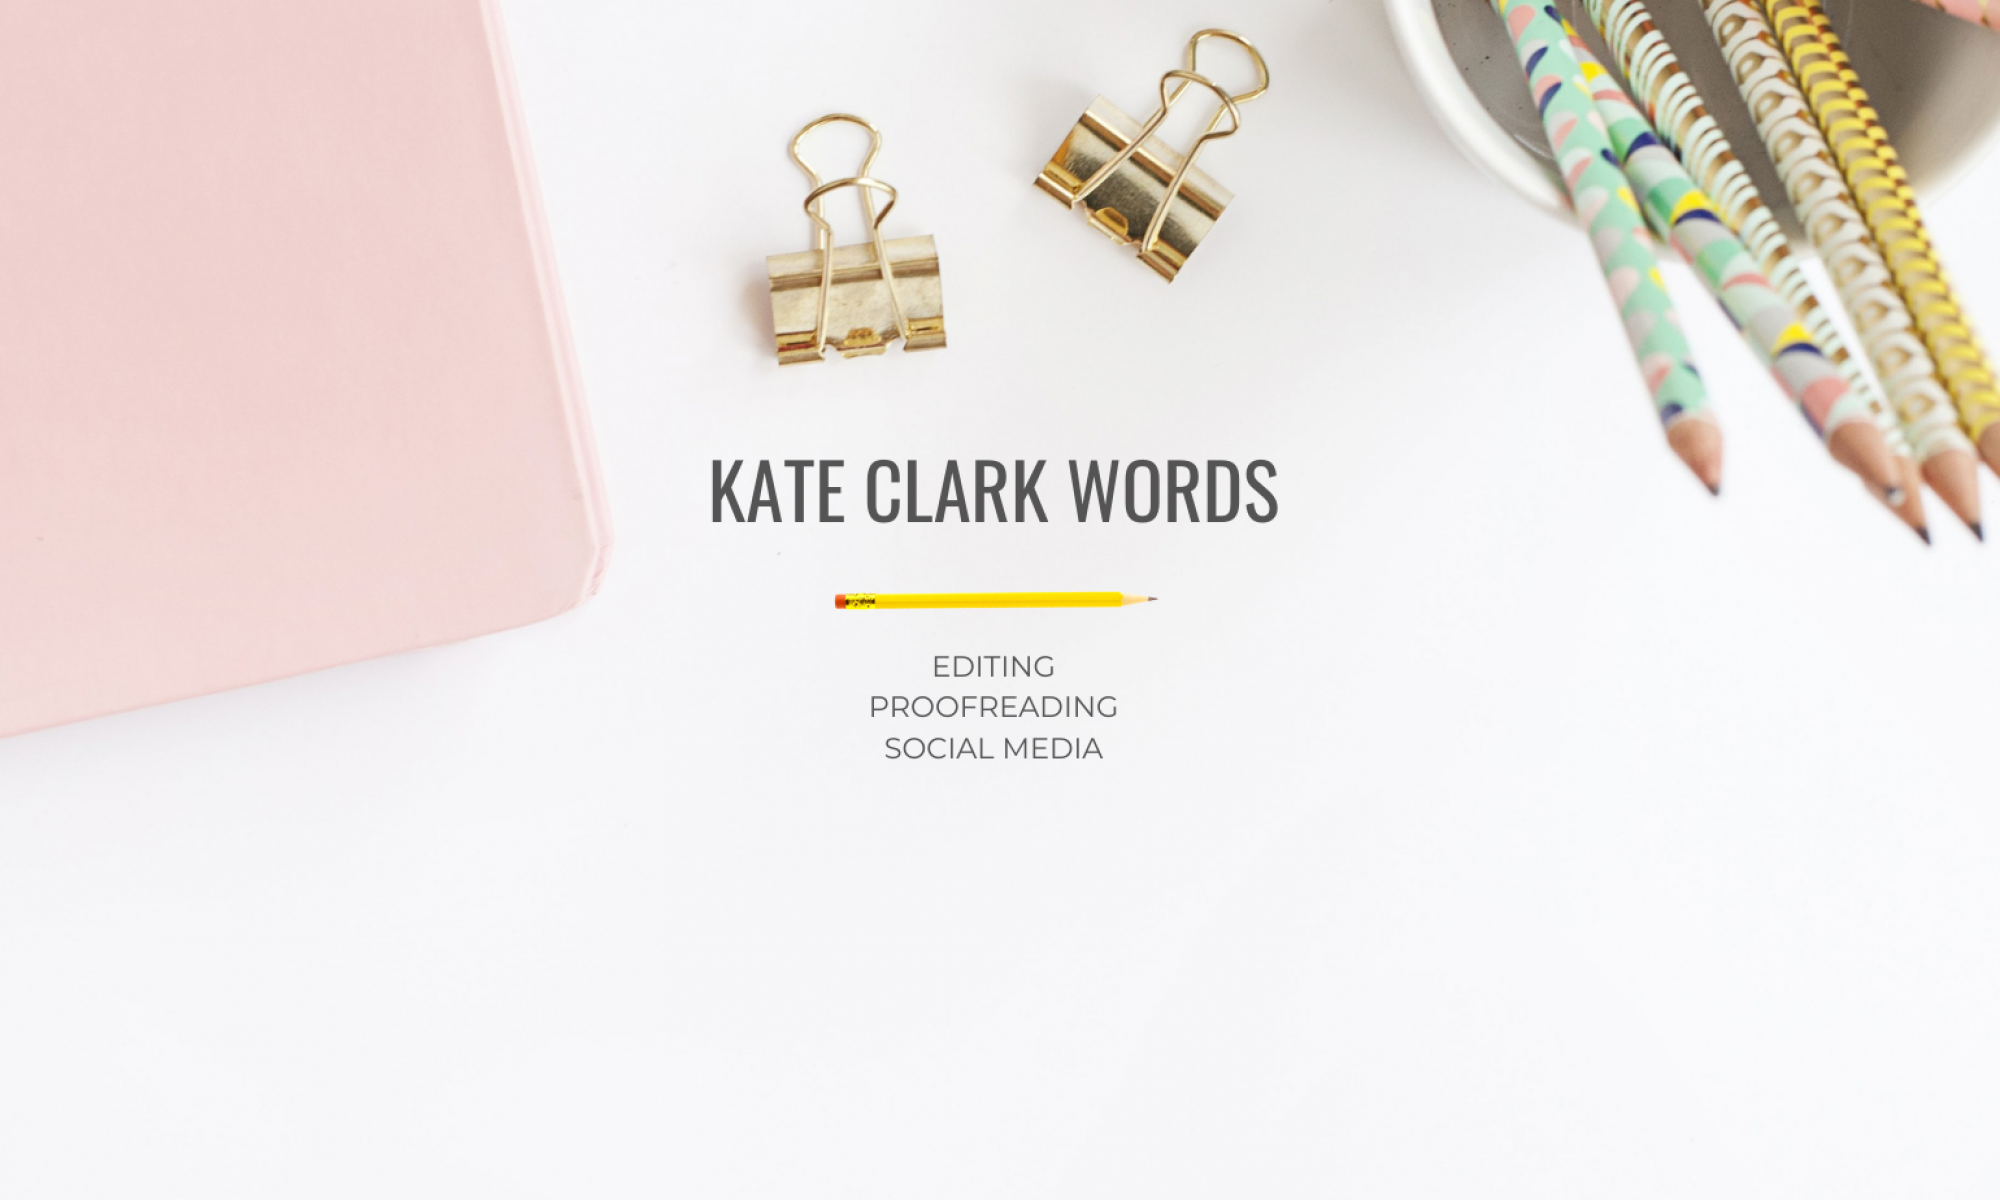 Kate Clark Words